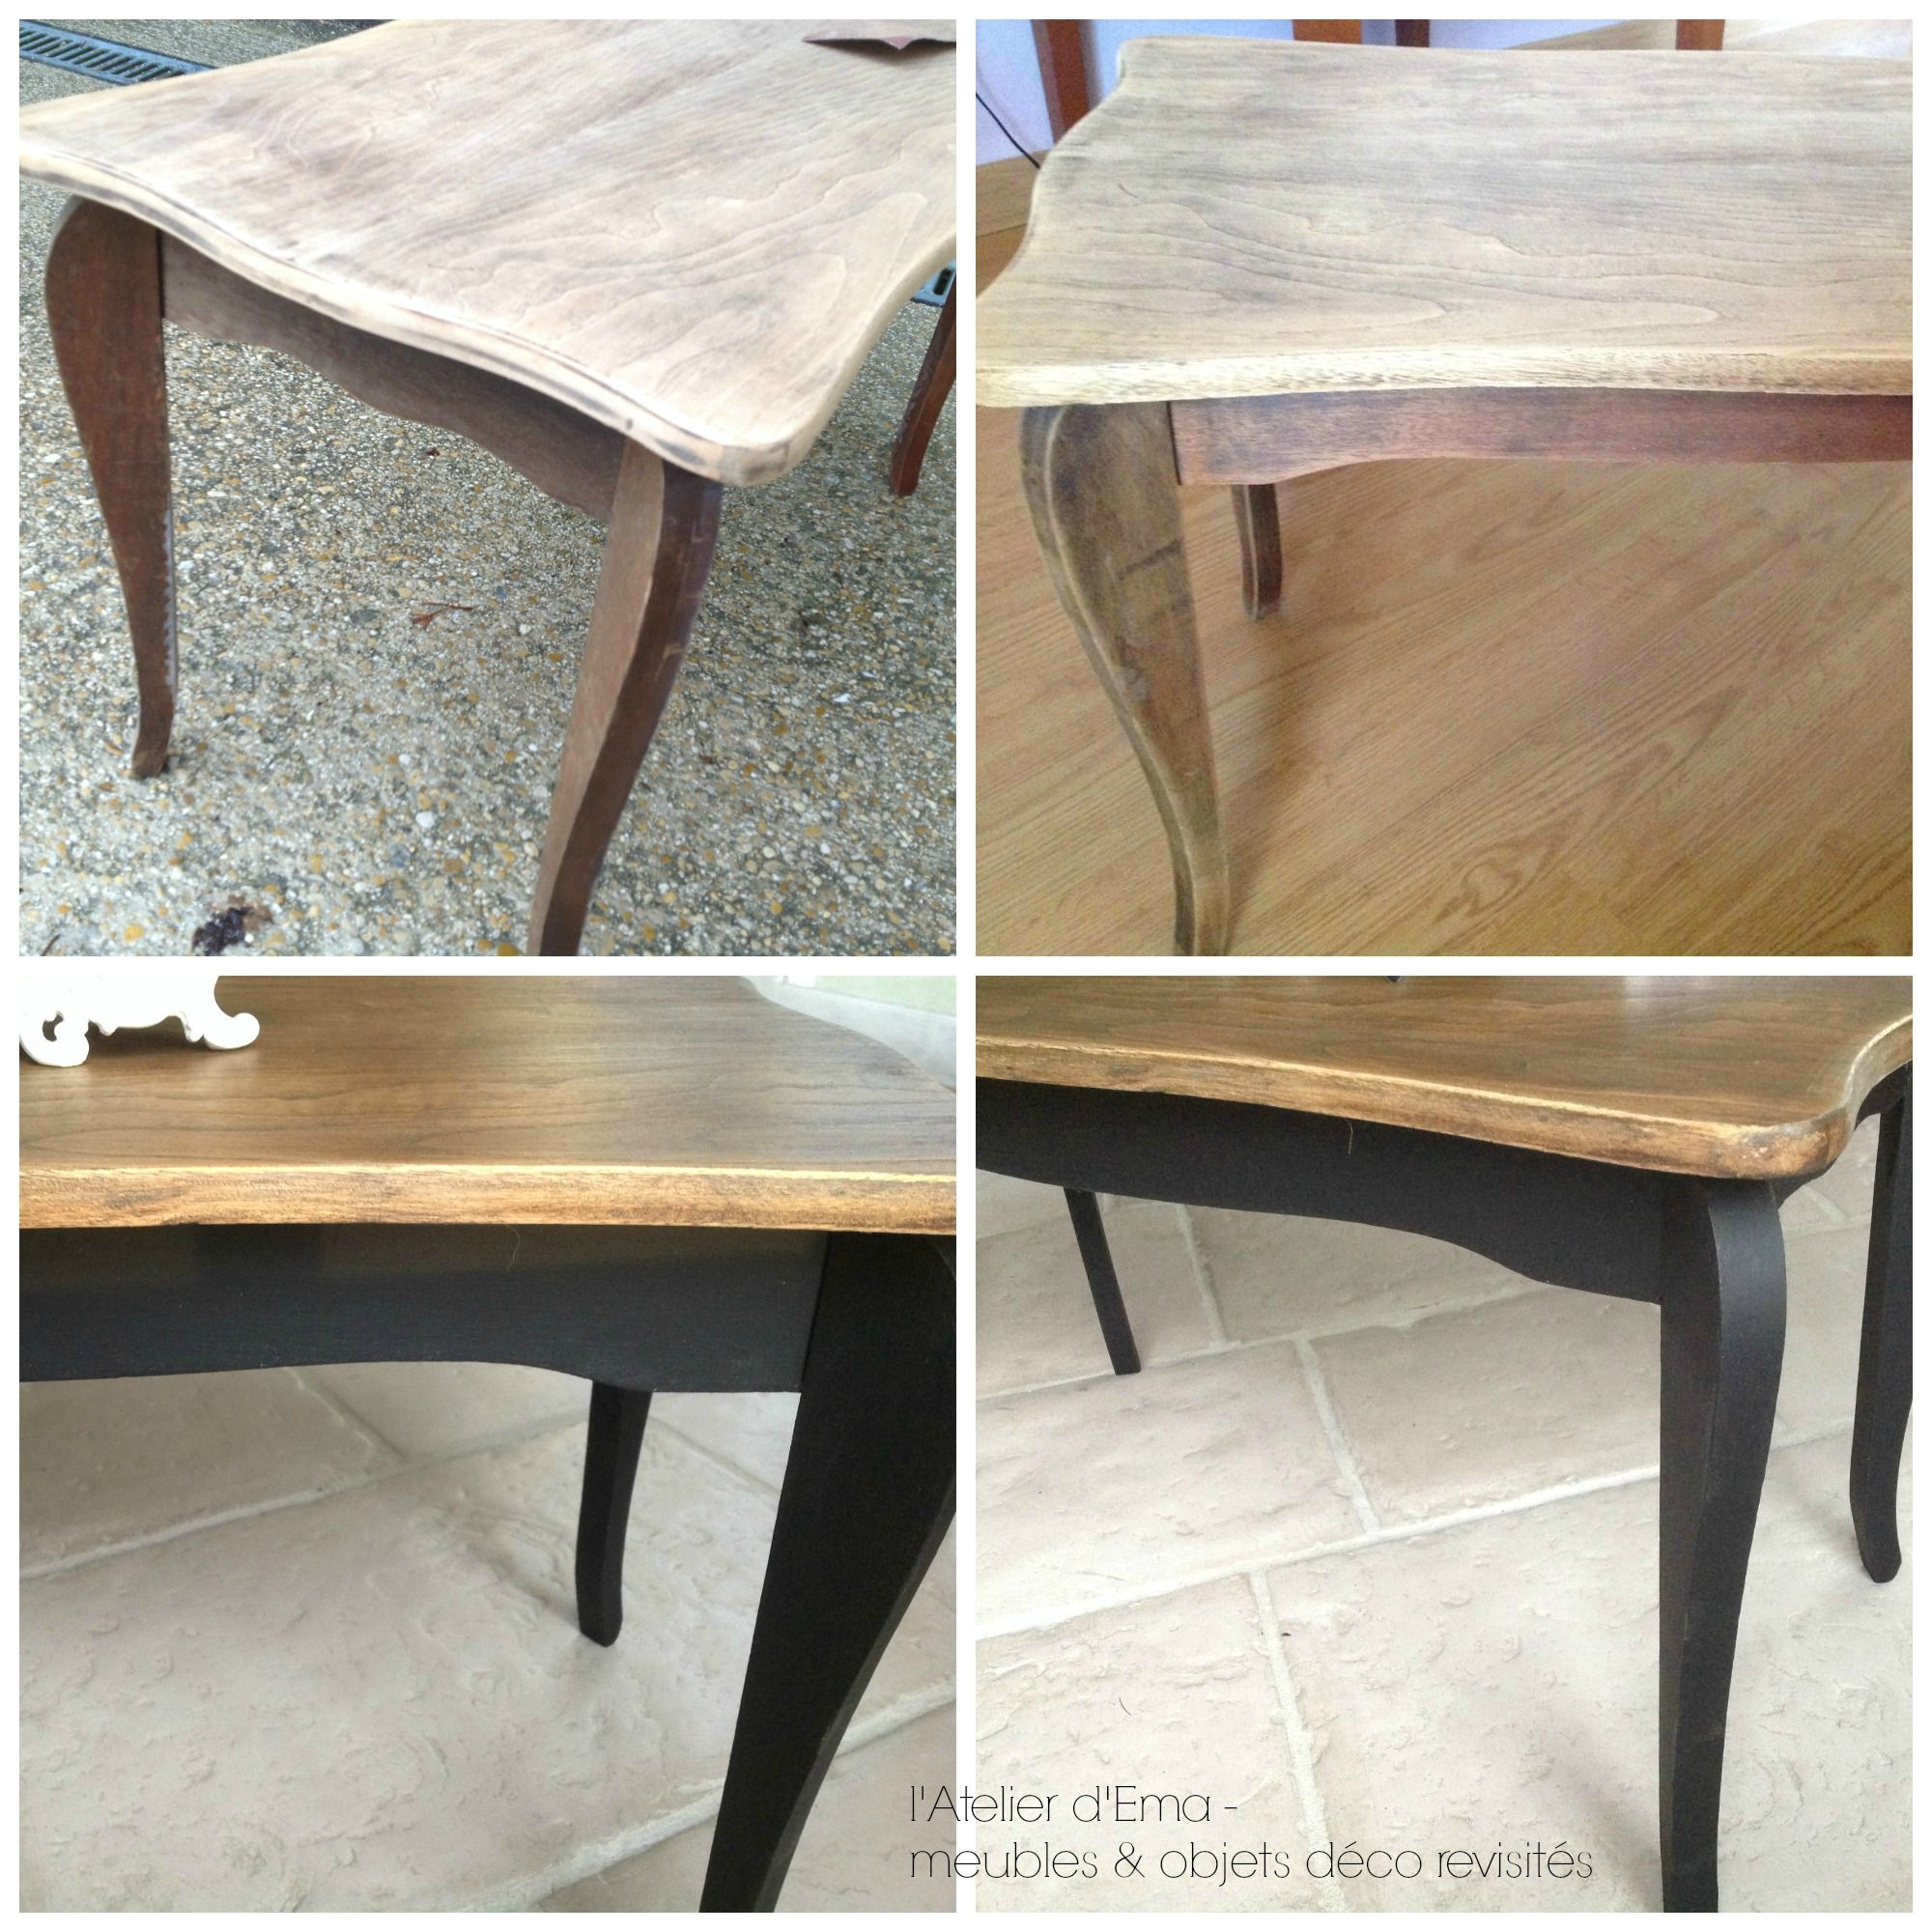 Table basse en bois patinee noir bois naturel - Table basse en bois naturel ...